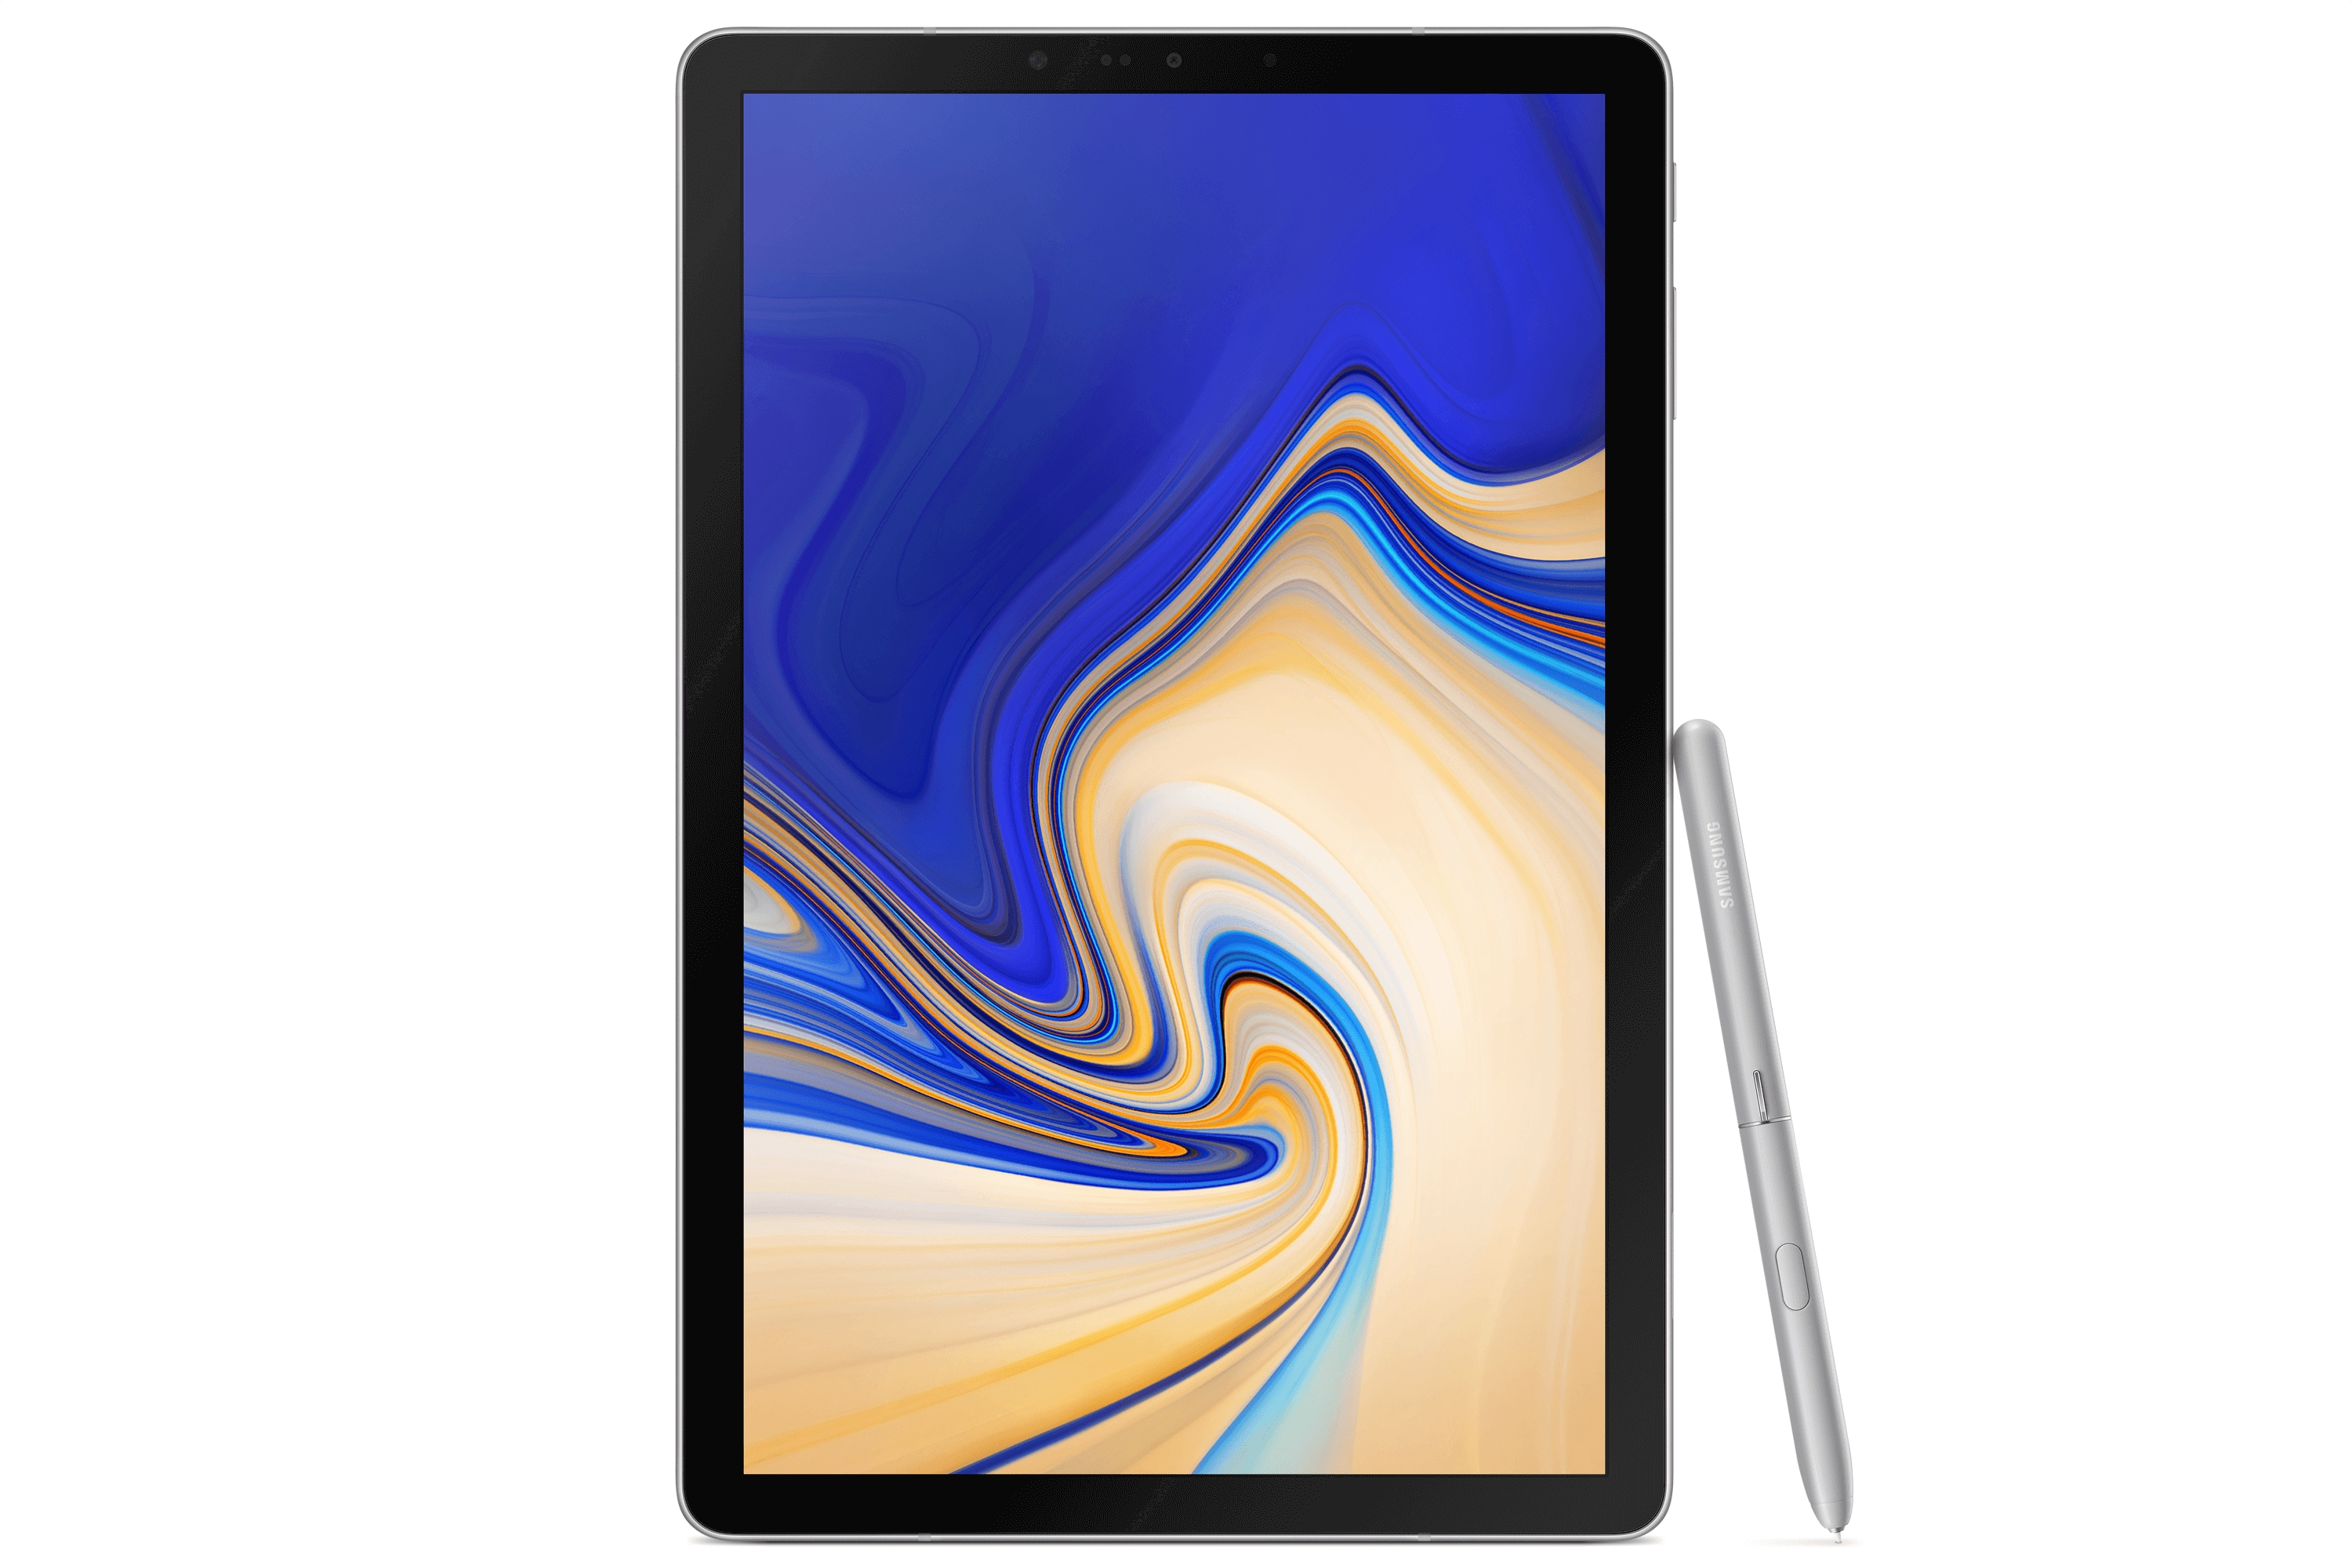 Compare prices for Galaxy Tab S4 10.5 wifi